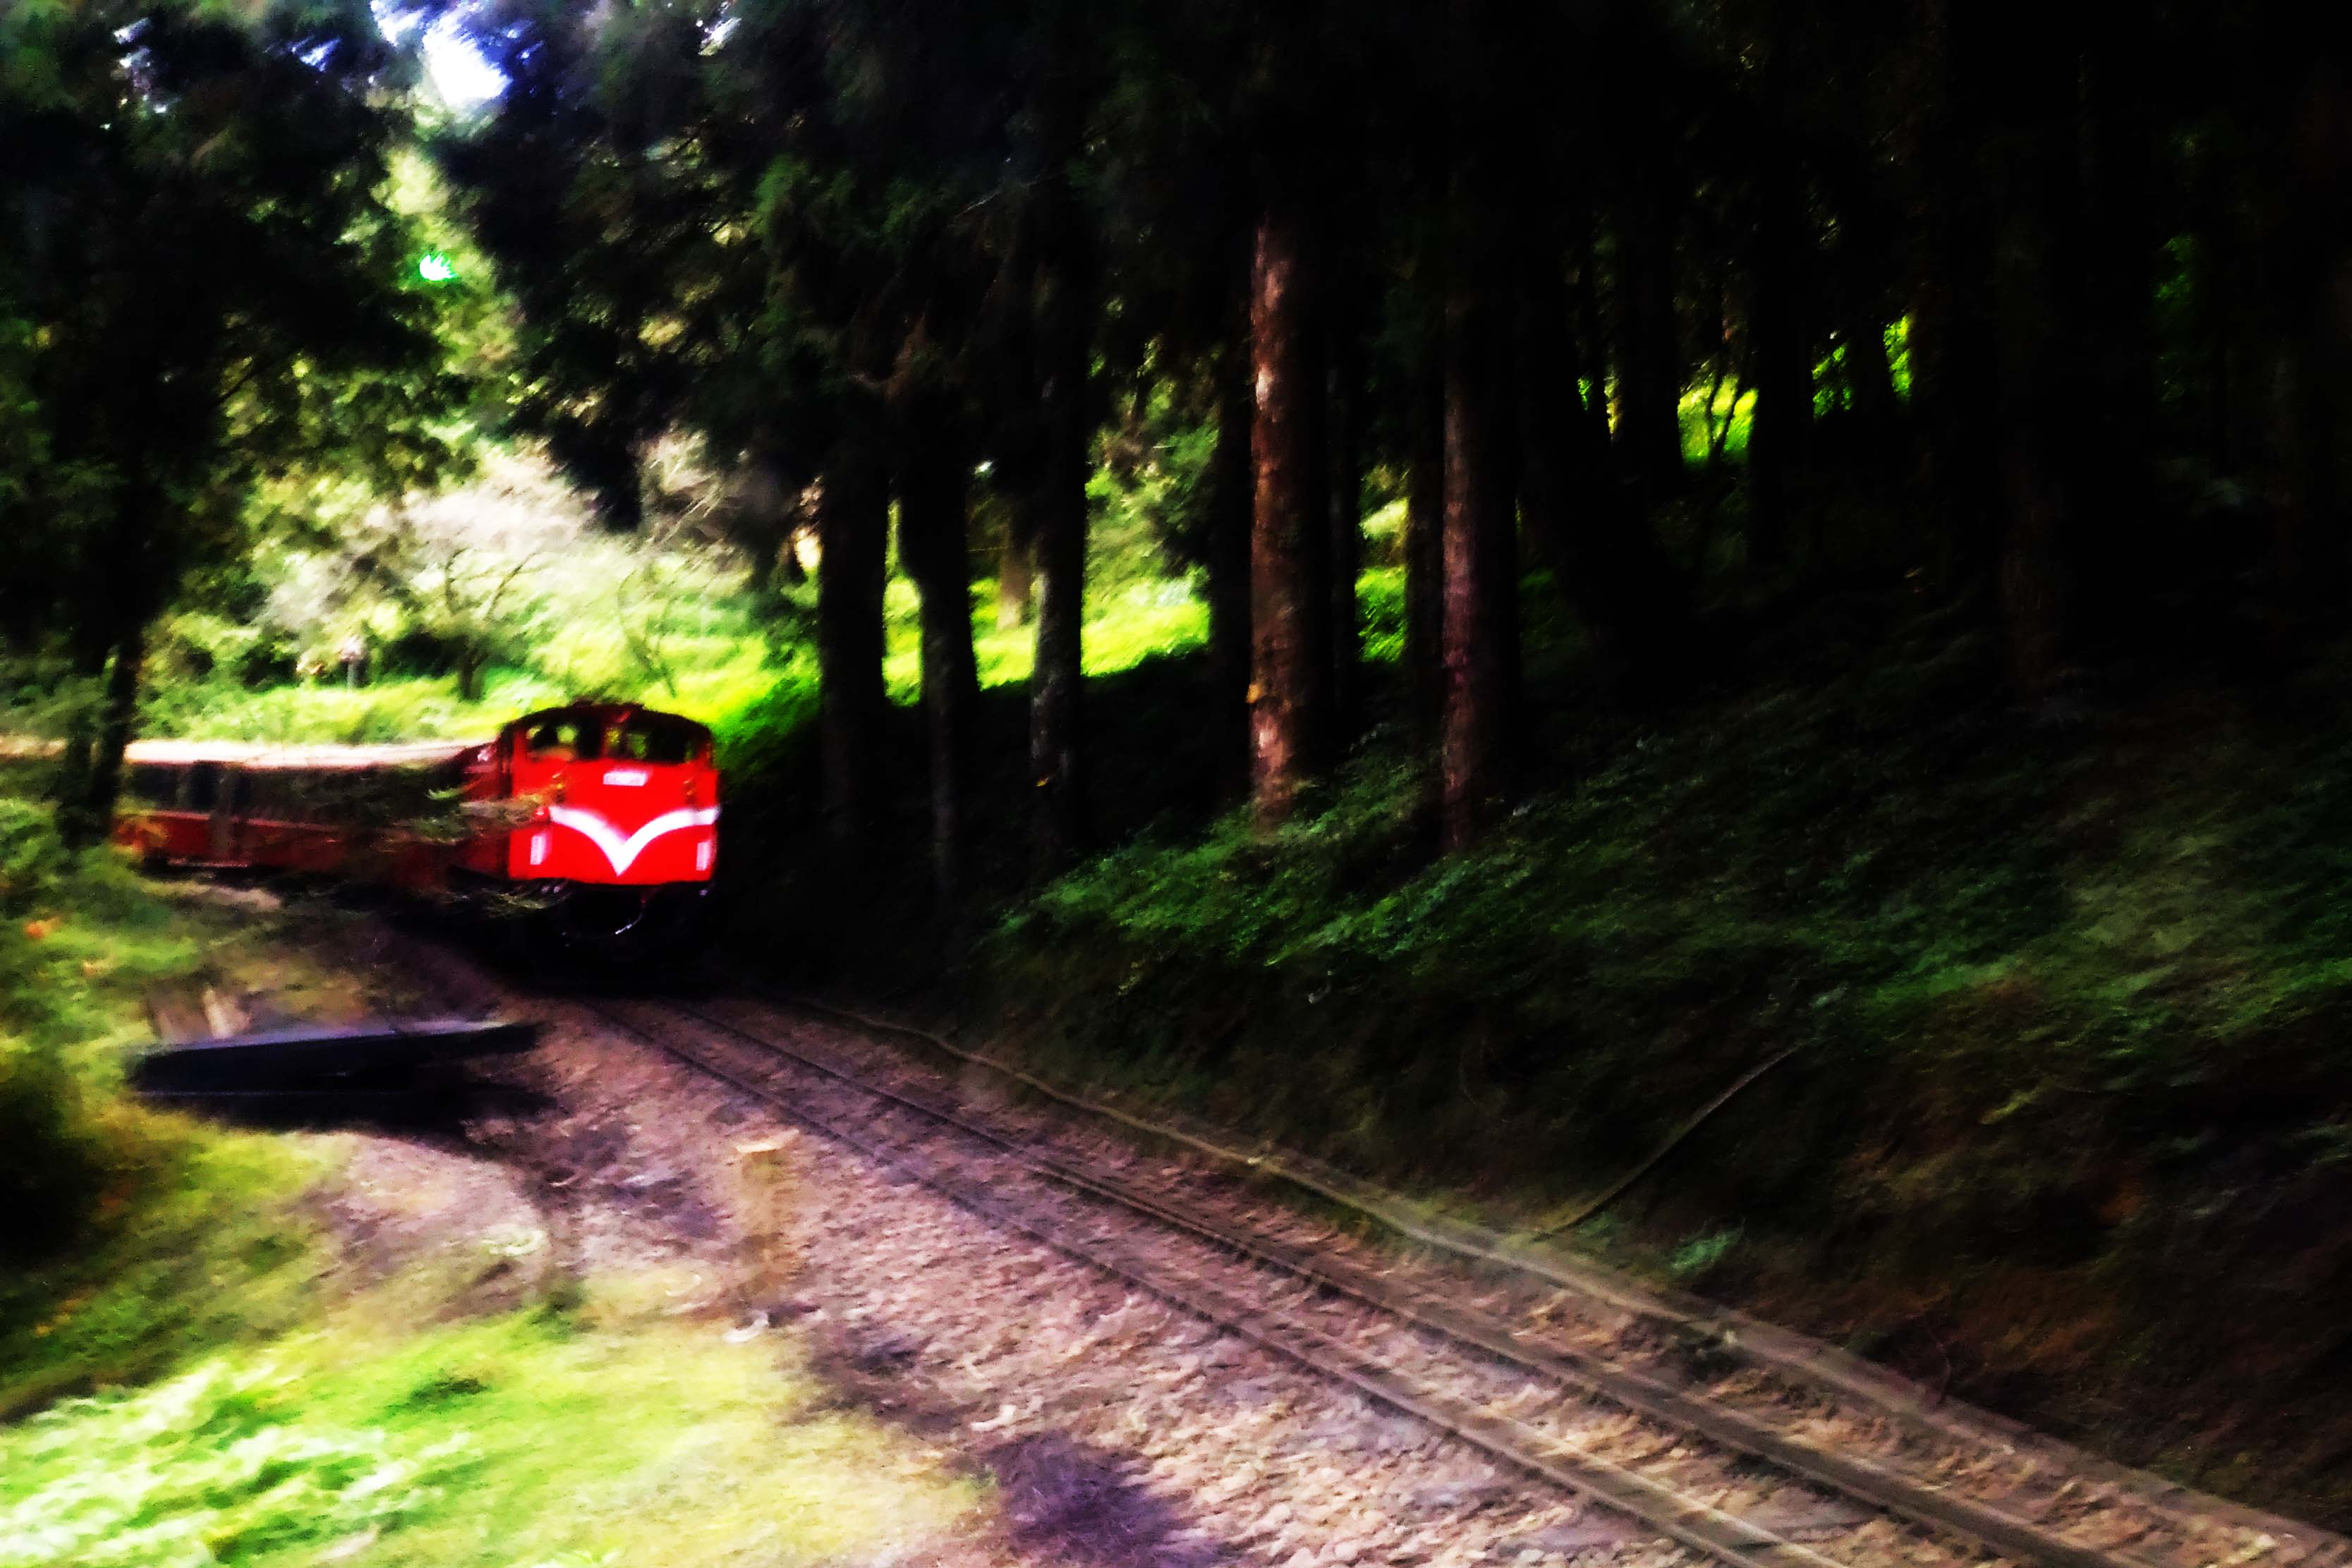 Trees and Trains of Alishan National Scenic Area in Taiwan